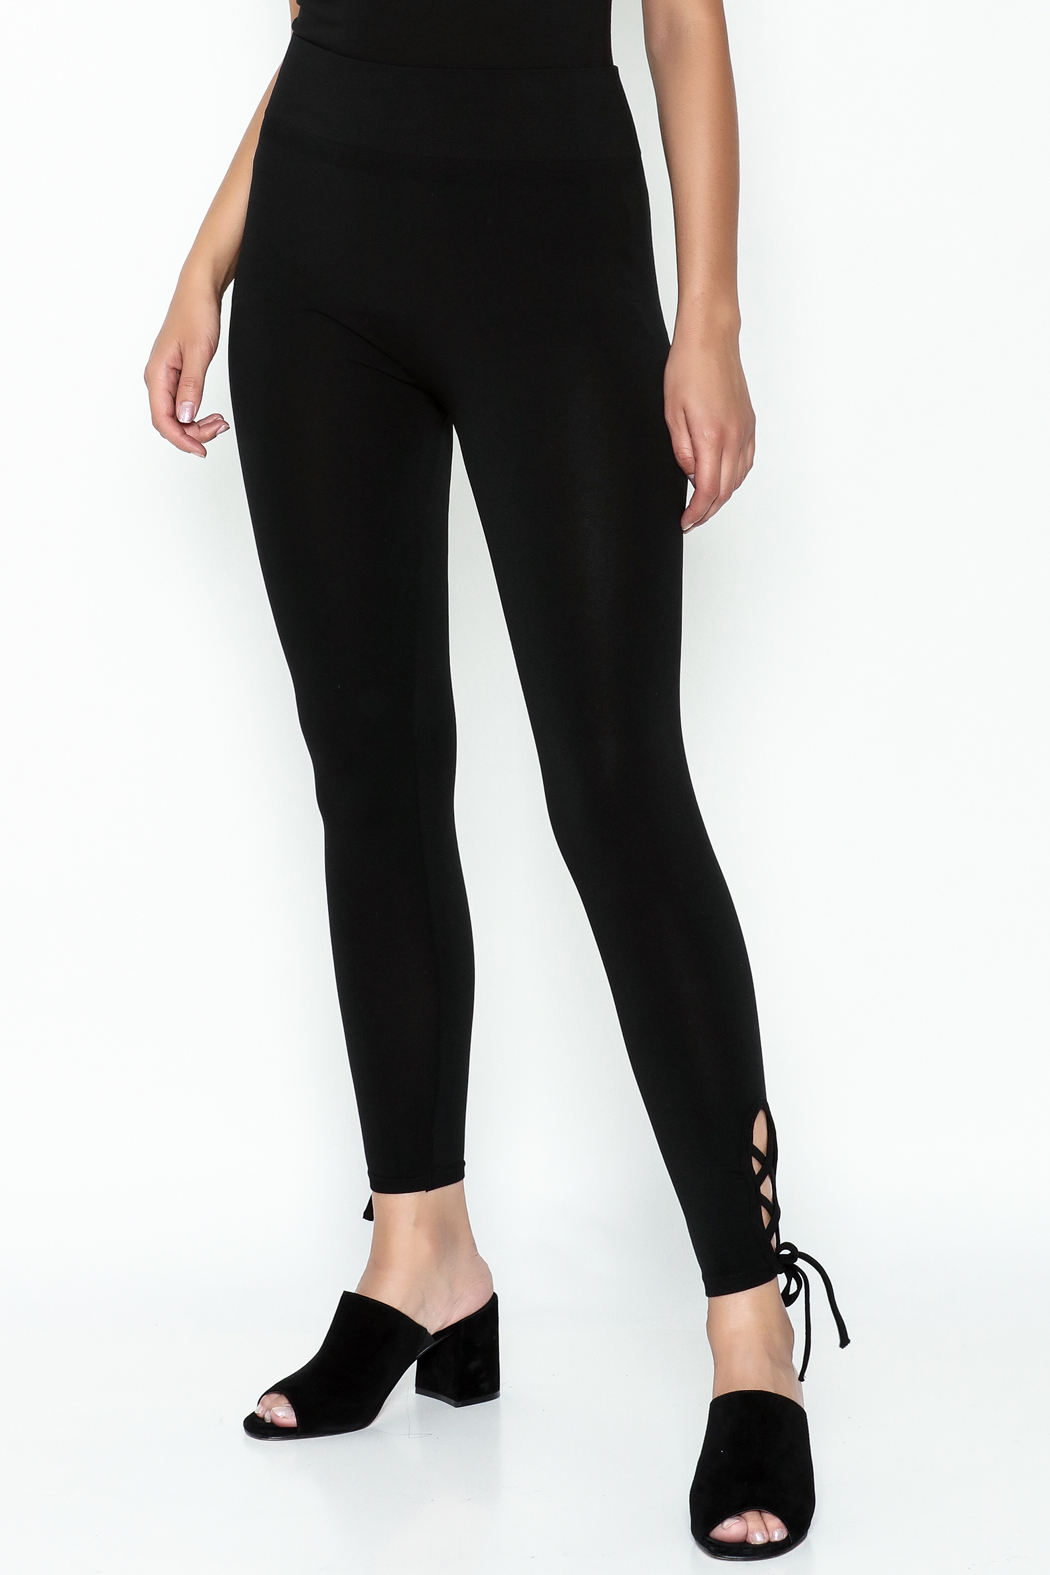 Private Label Criss Cross Leggings - Main Image